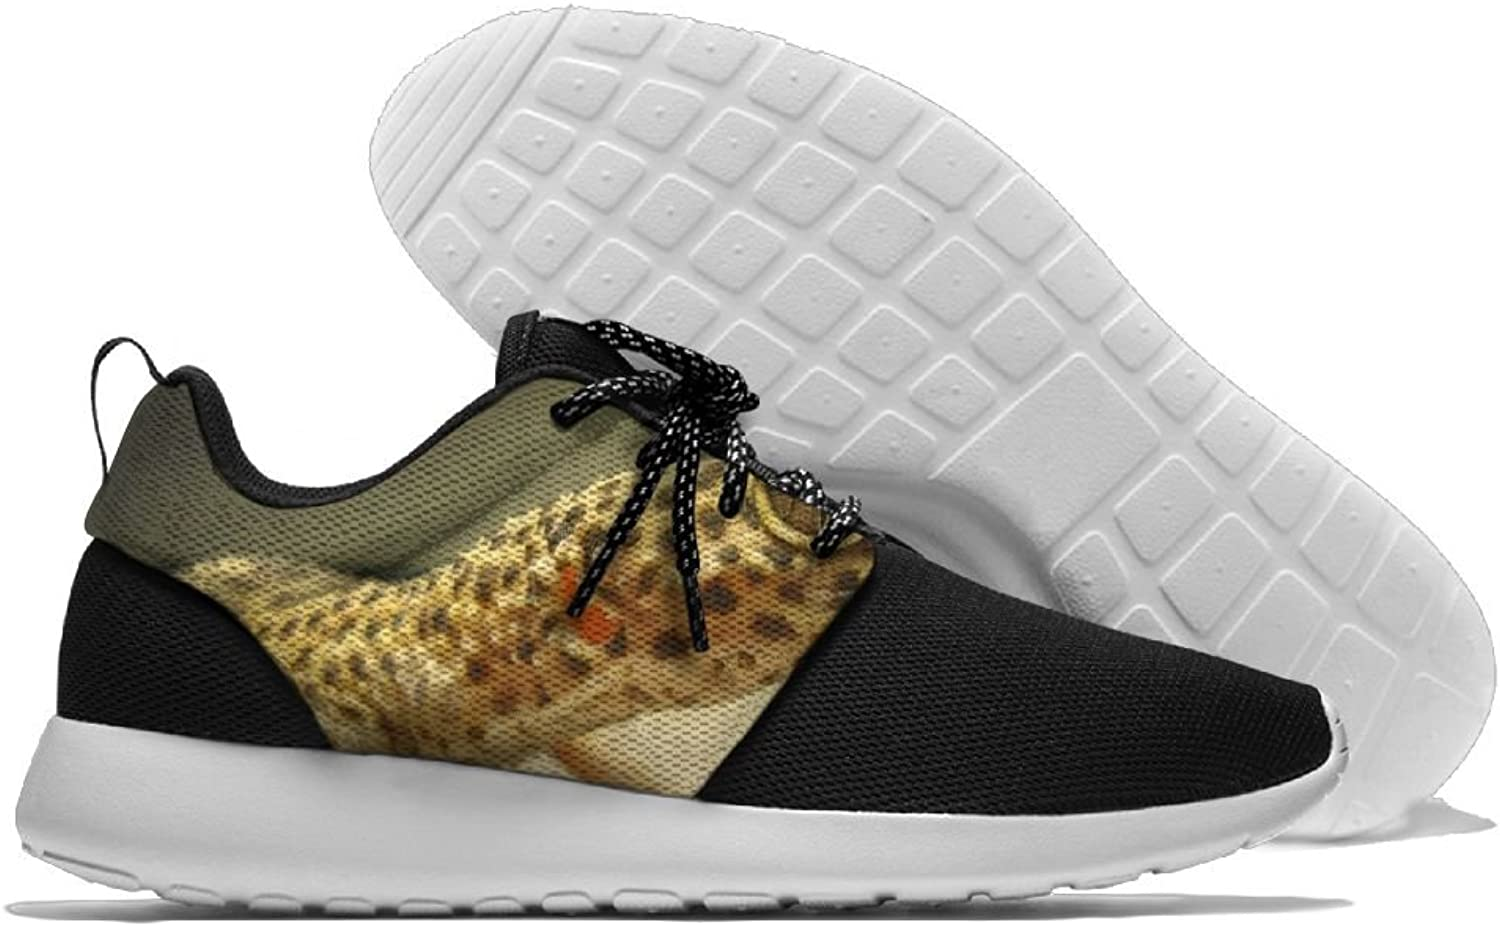 Sneakers Casual Running shoes Leopard Gecko Lightweight Breathable Mesh Walking Men Women shoes For Sports Athletic Gym Travel